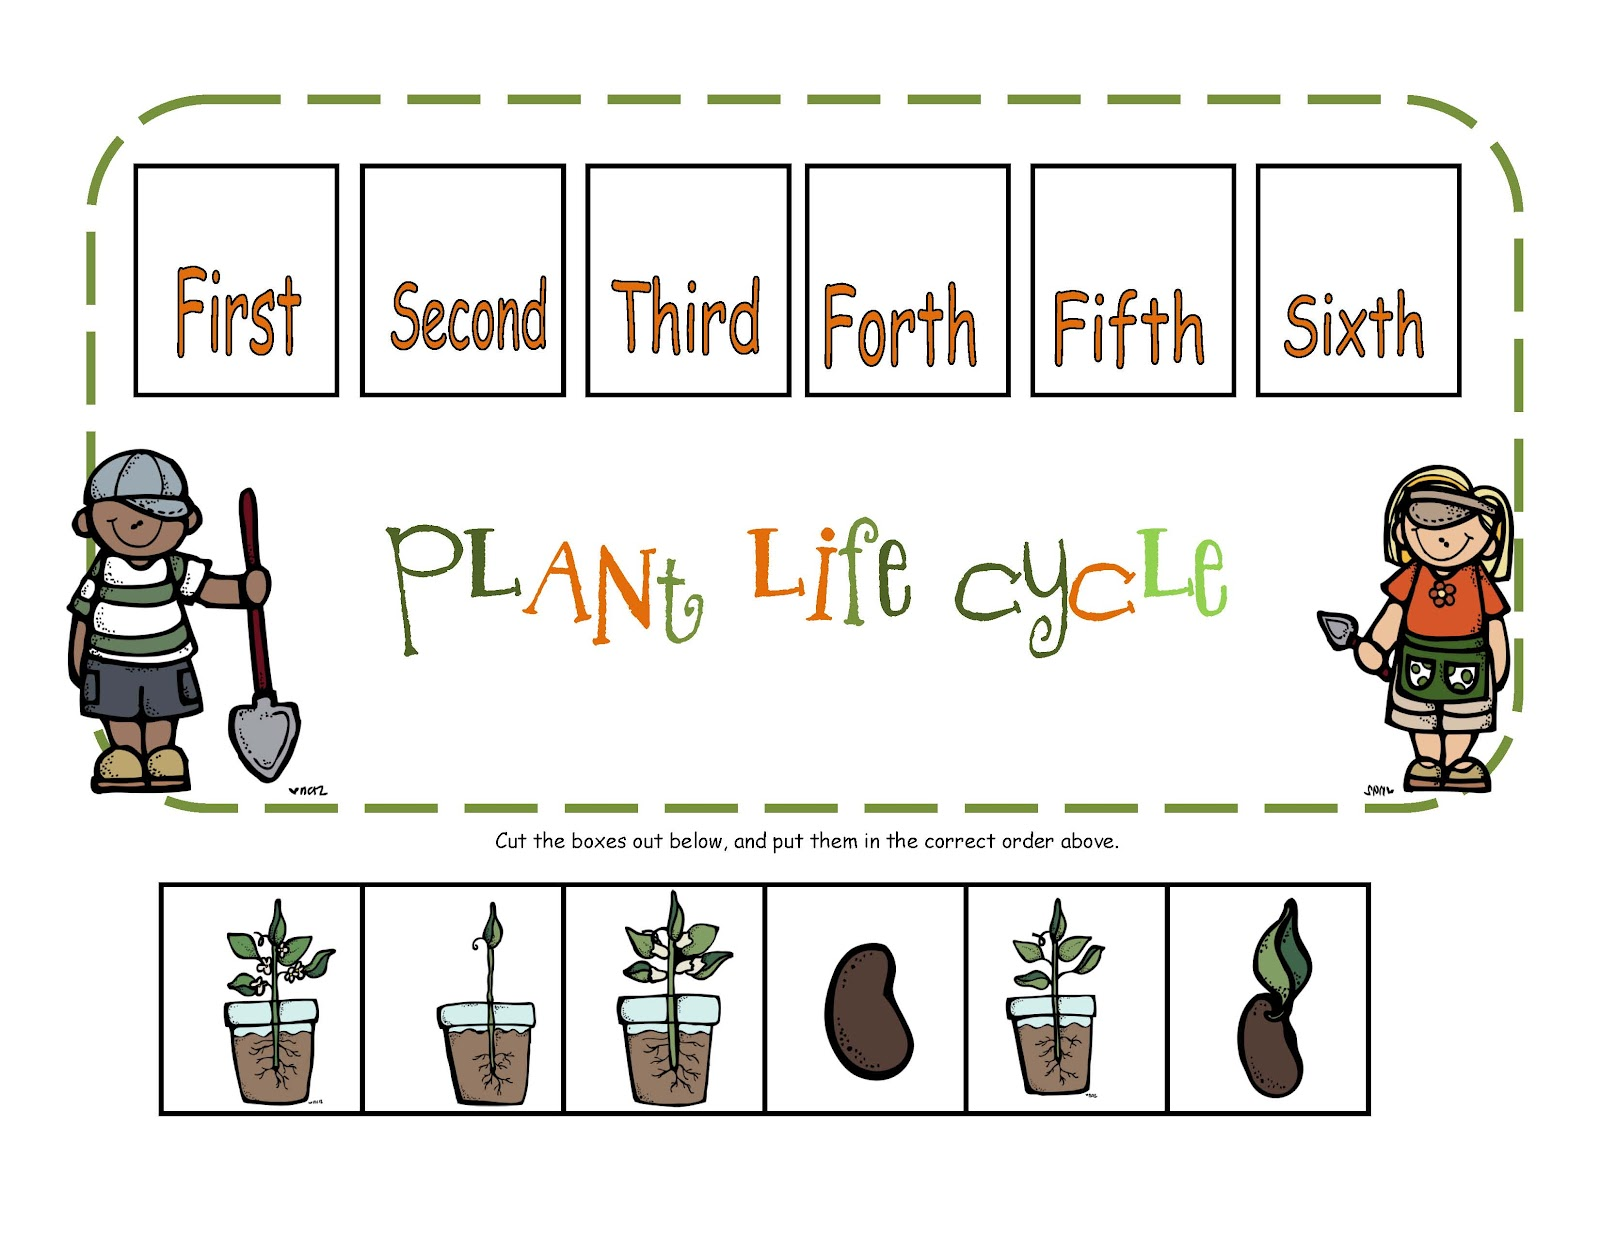 worksheet Life Cycle Of A Plant Worksheet plant life cycle in order by caroline soesbee teachers pay teachers